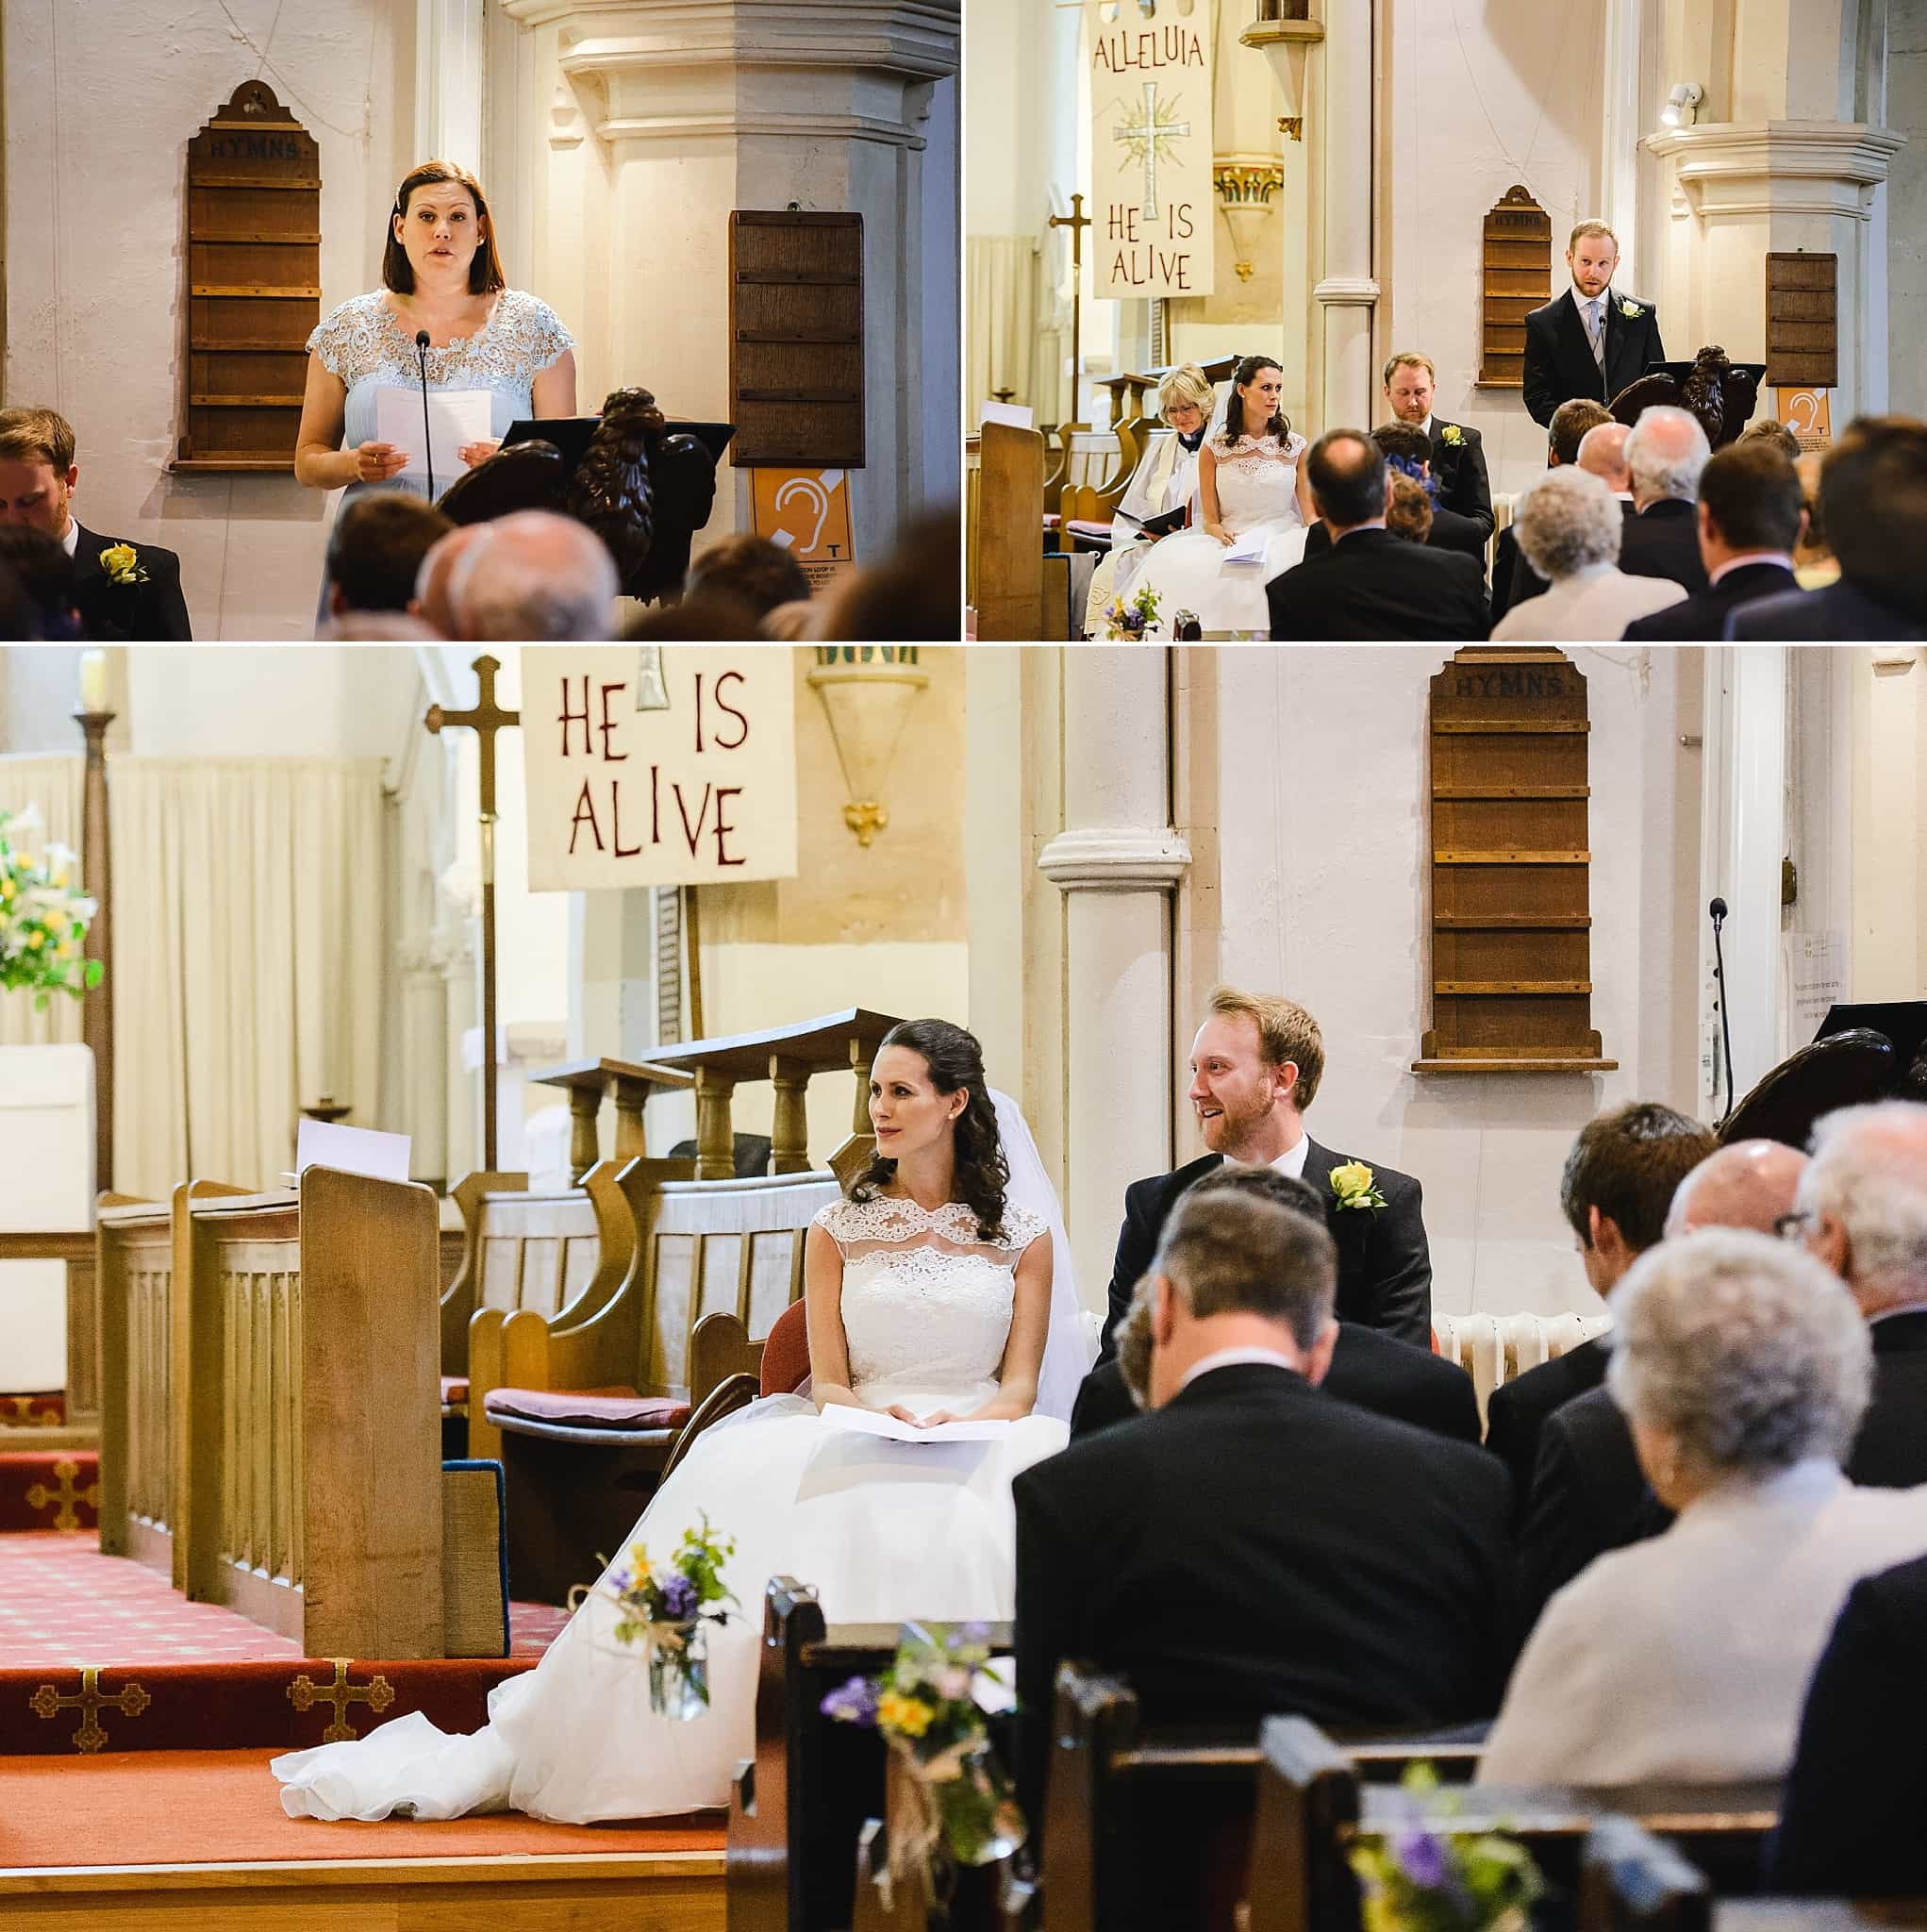 wedding readings during a wedding service at St Swithins church, Bathford